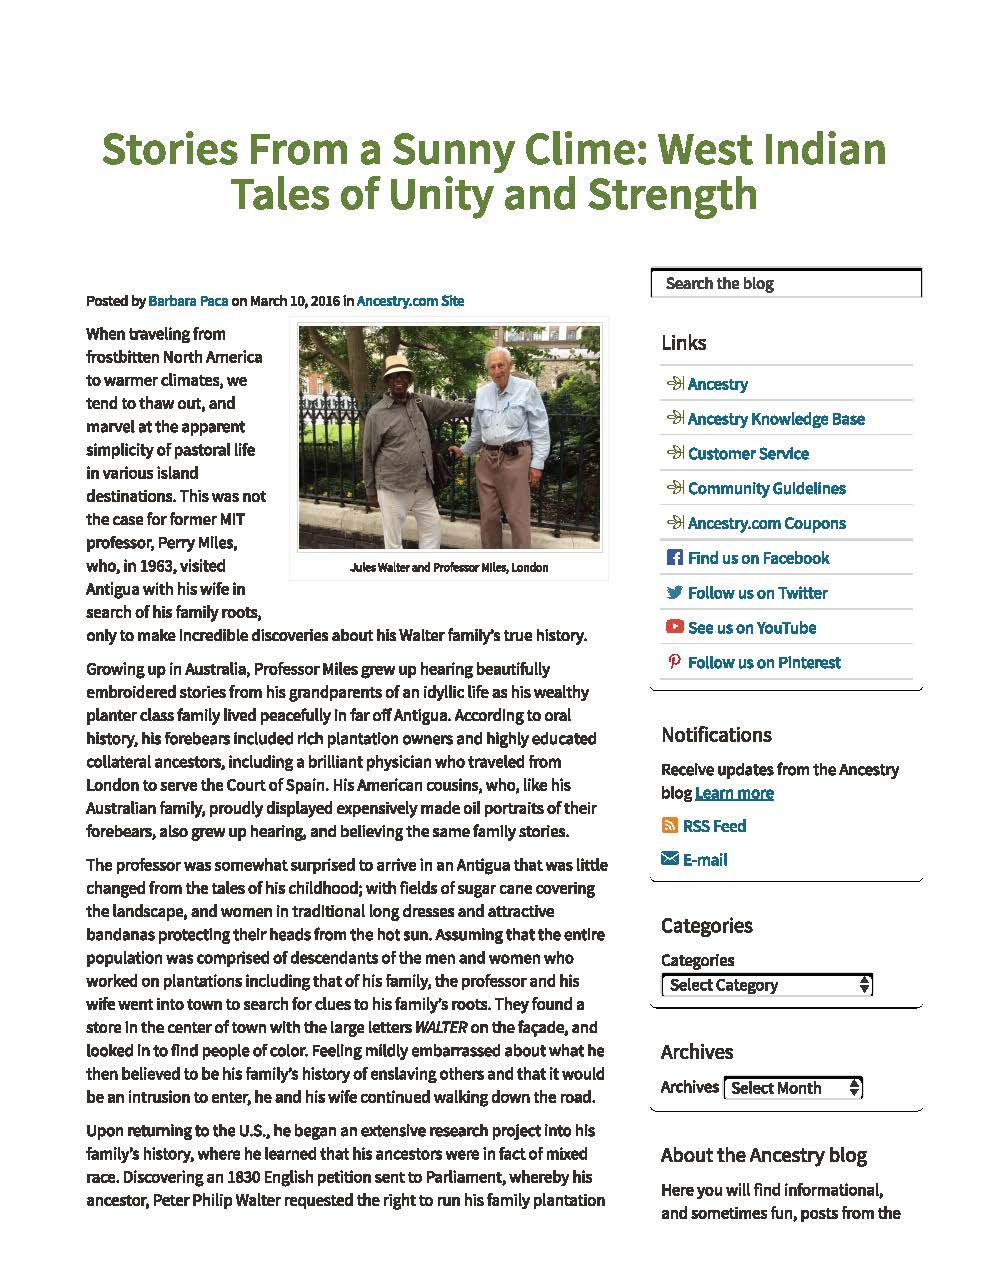 Stories From a Sunny Clime- Wean Tales of Unity and Strength 1.jpg